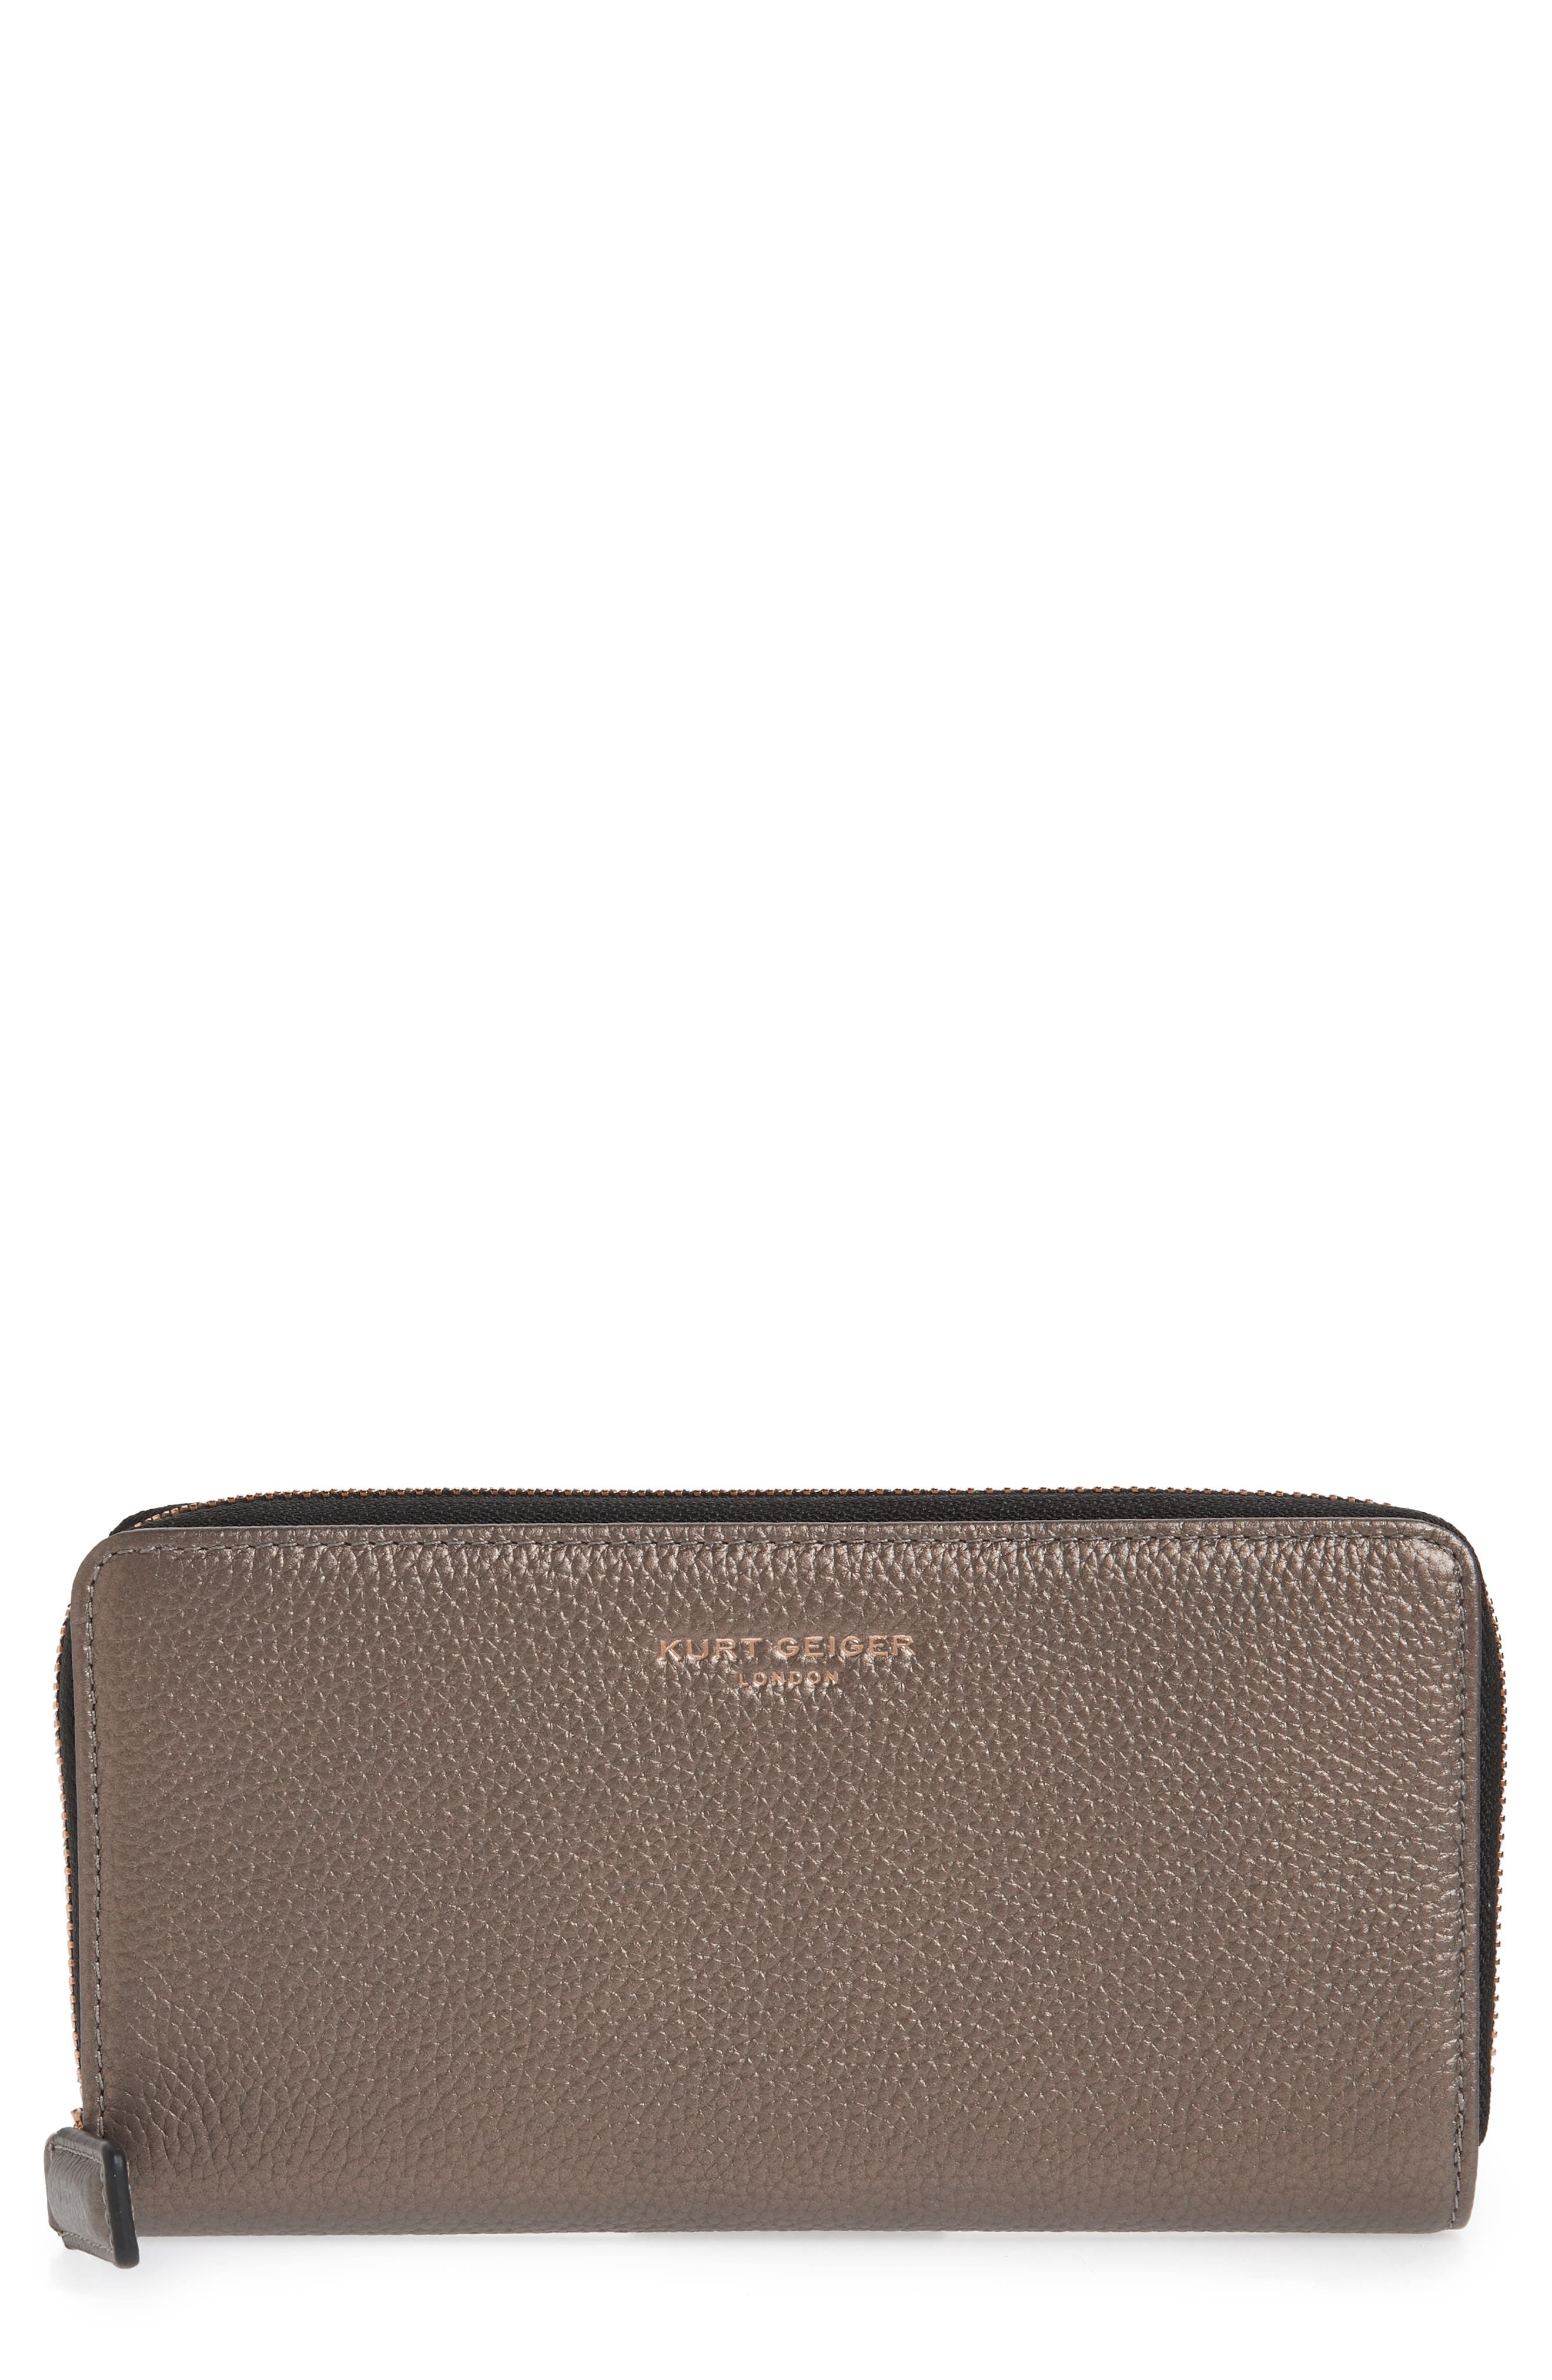 Zip Around Leather Wallet,                             Main thumbnail 2, color,